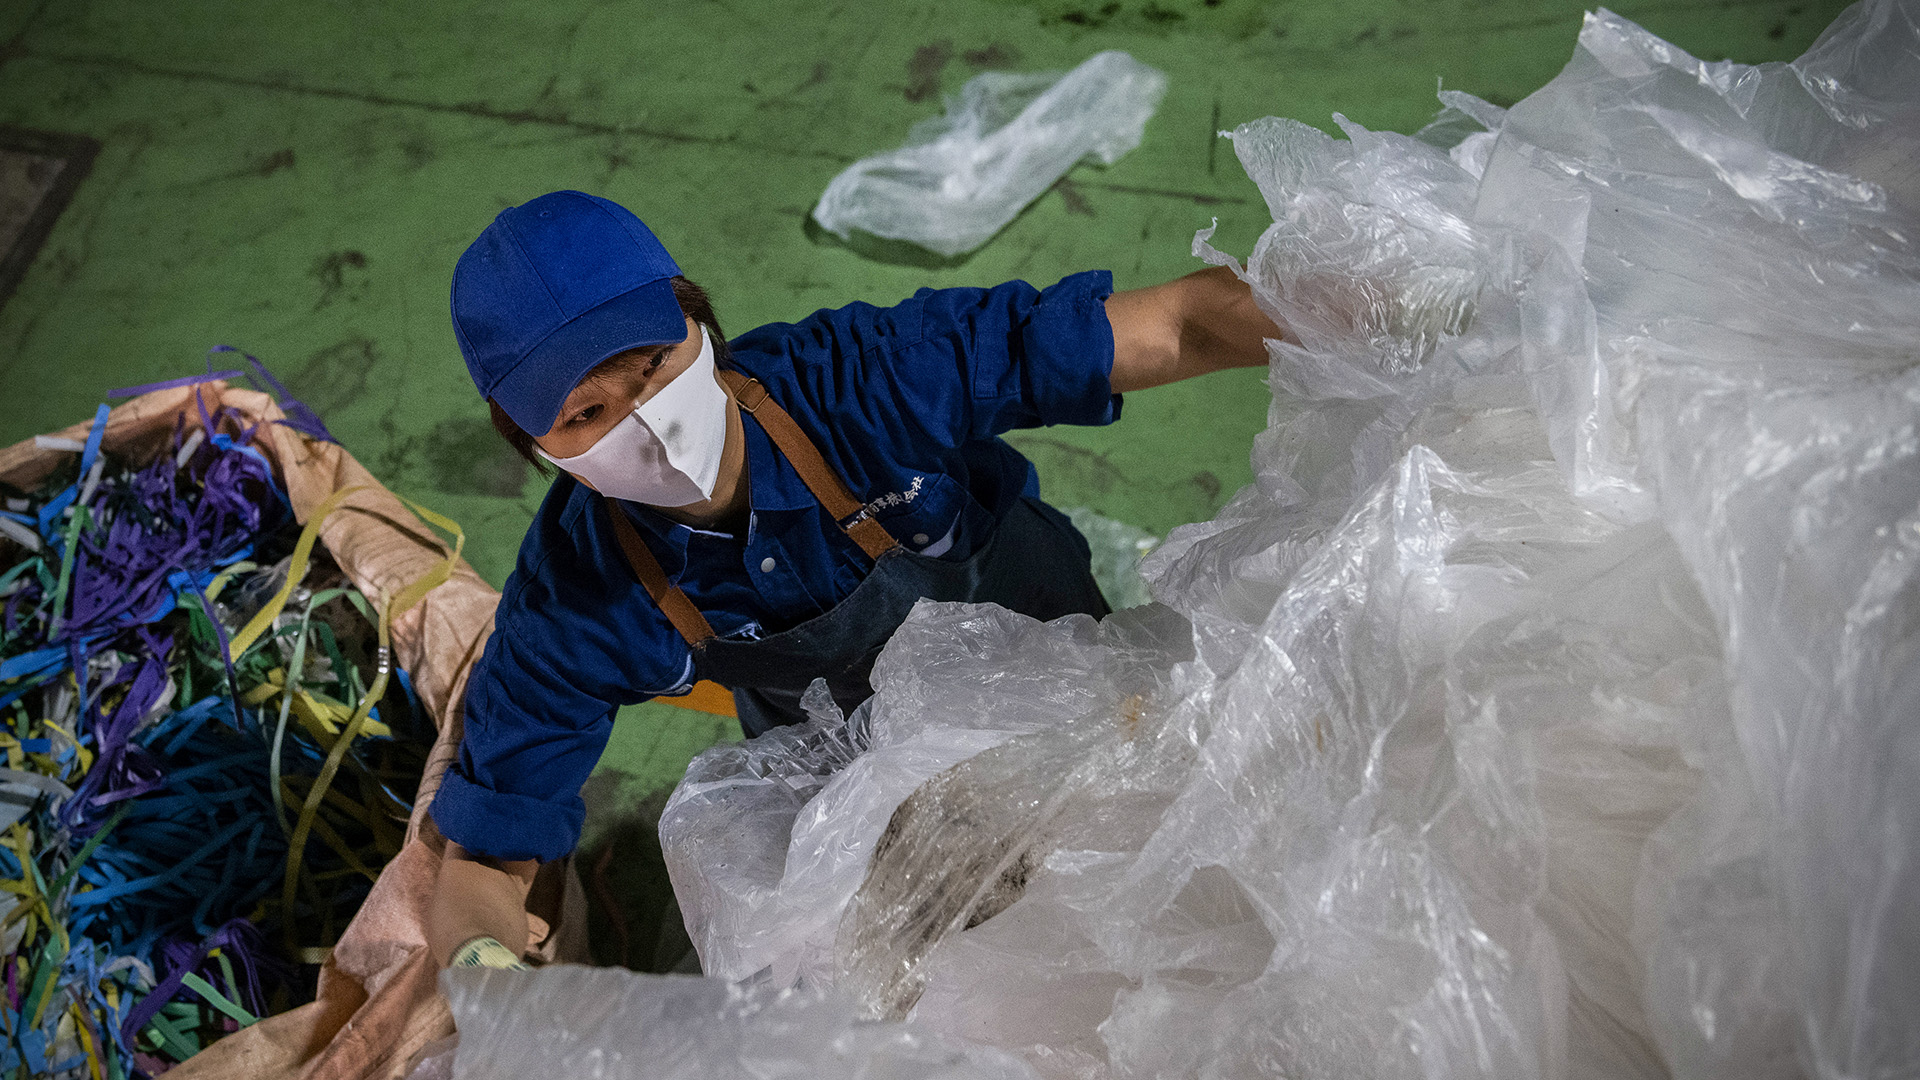 Study Shows Enzyme-Based Plastic Recycling Is Better For Environment